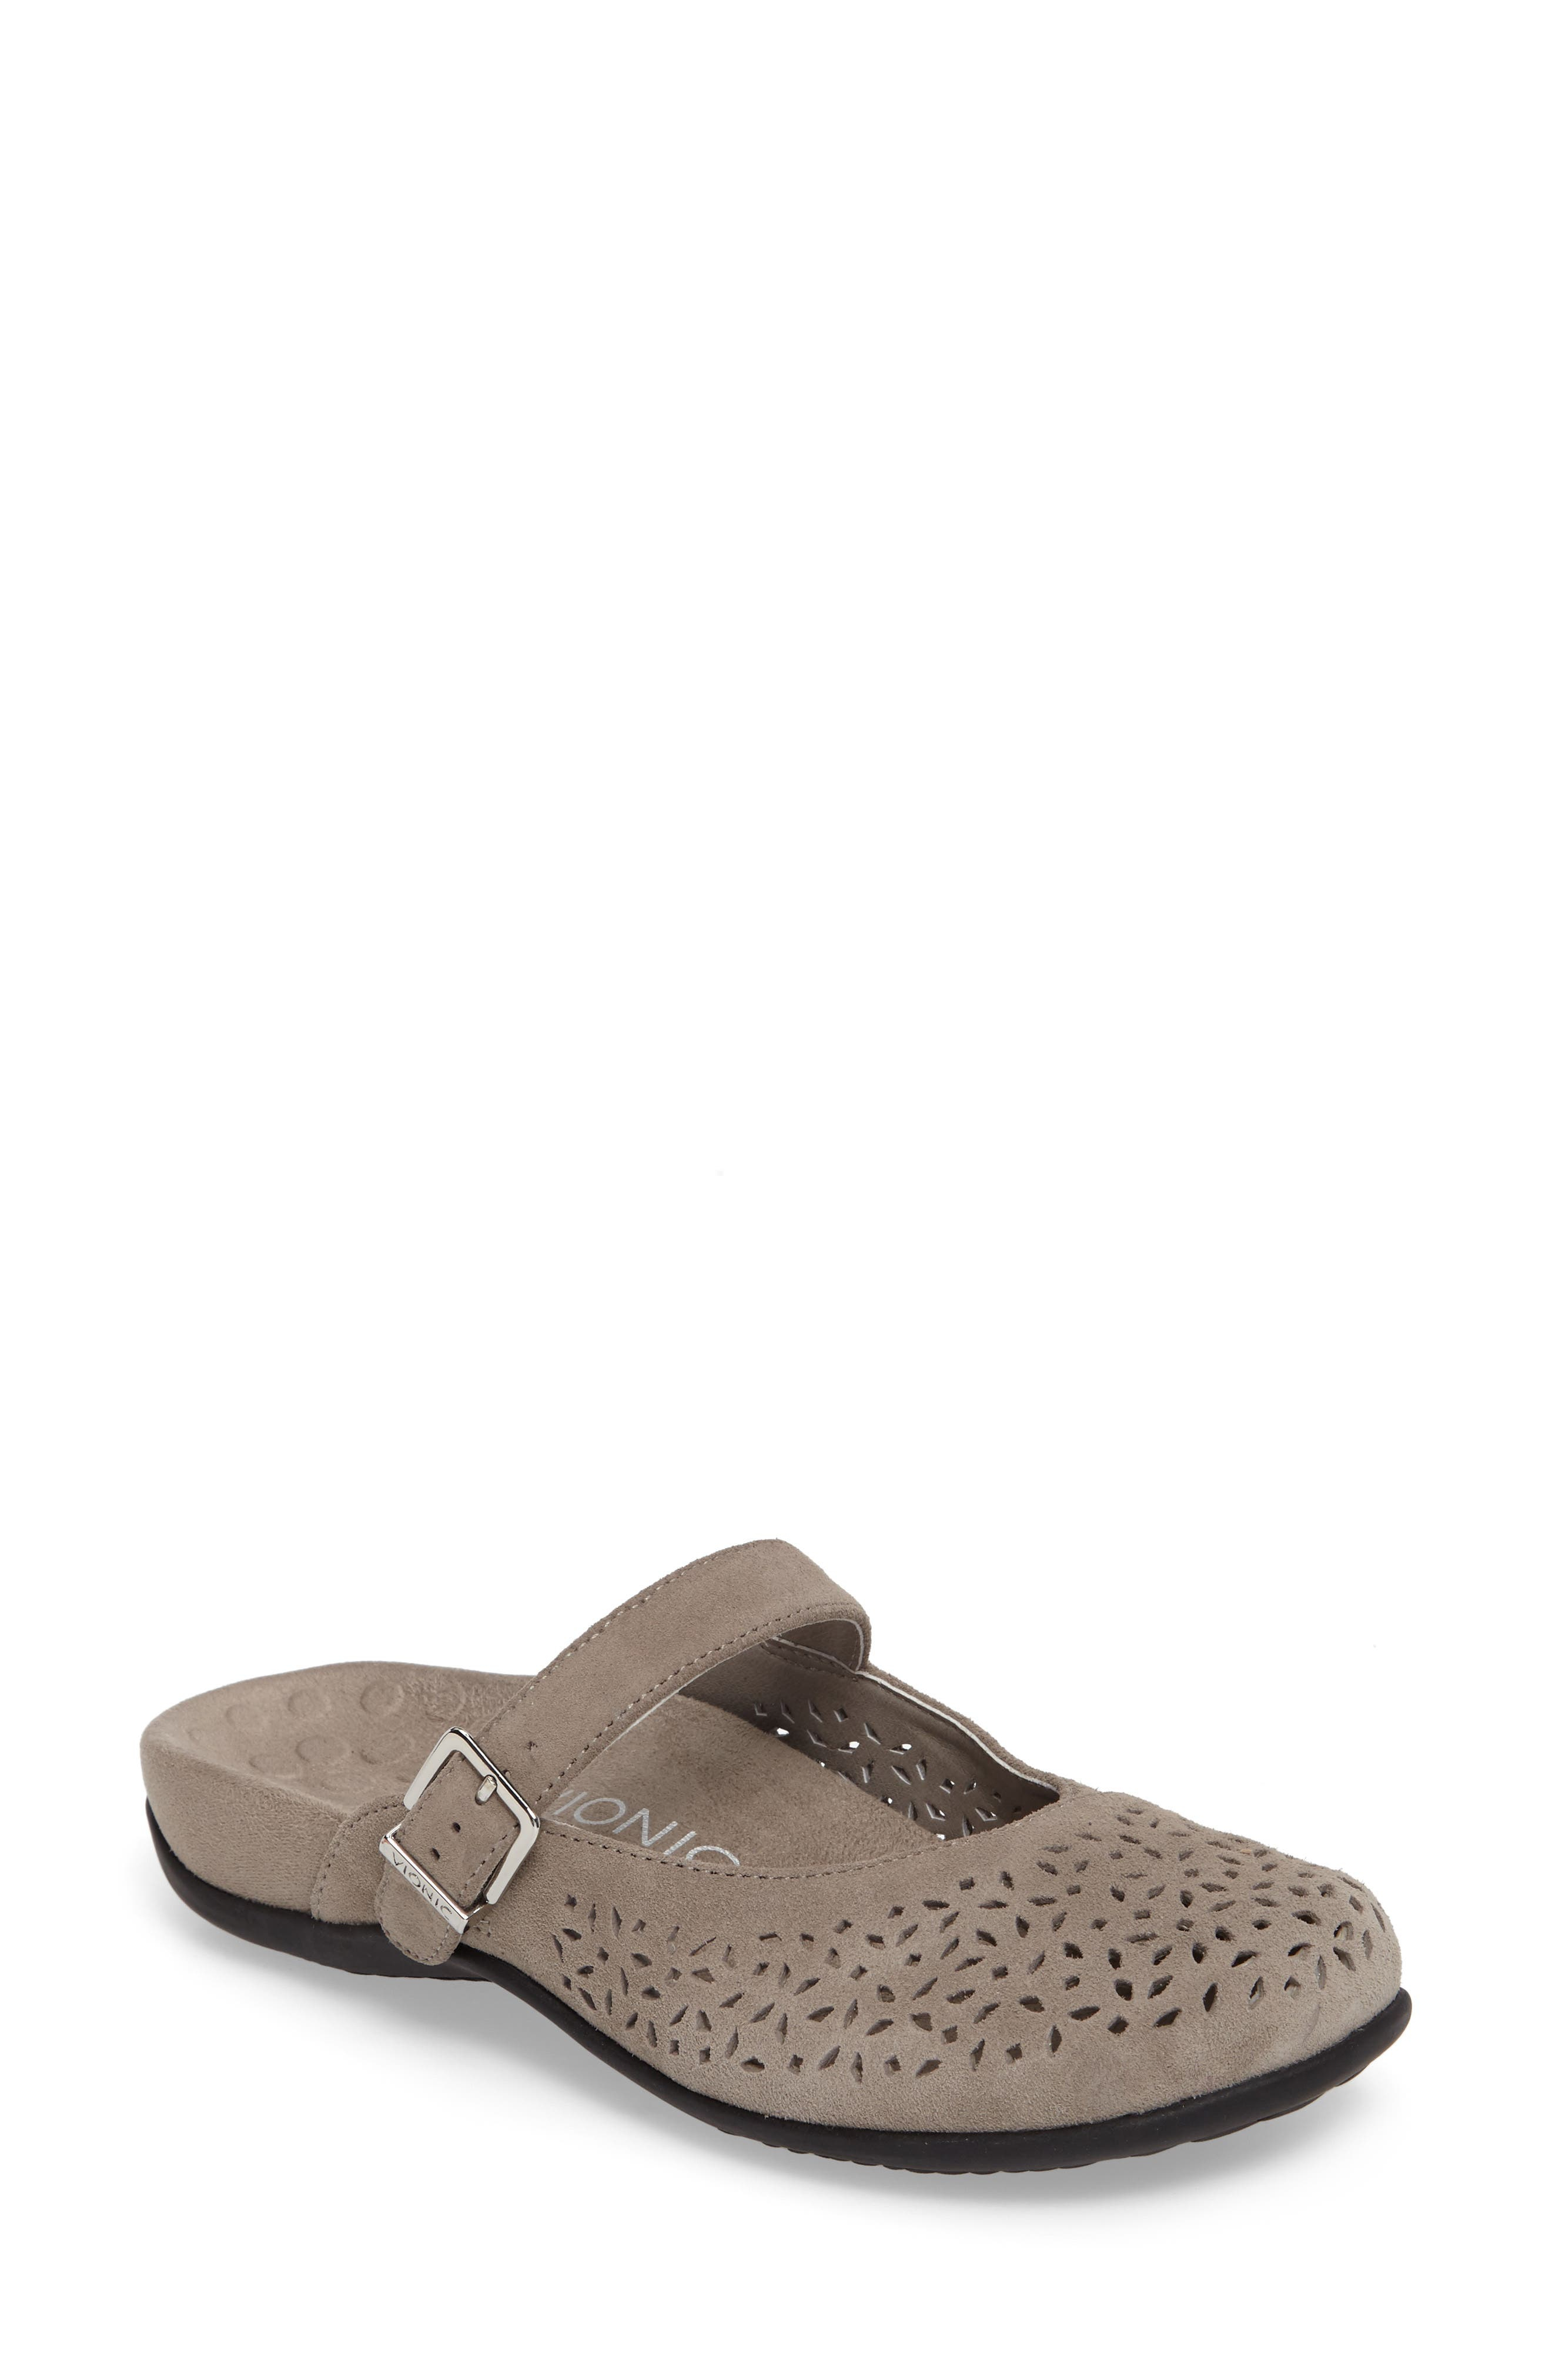 Rest Lidia Perforated Mary Jane Mule,                             Main thumbnail 1, color,                             Grey Suede